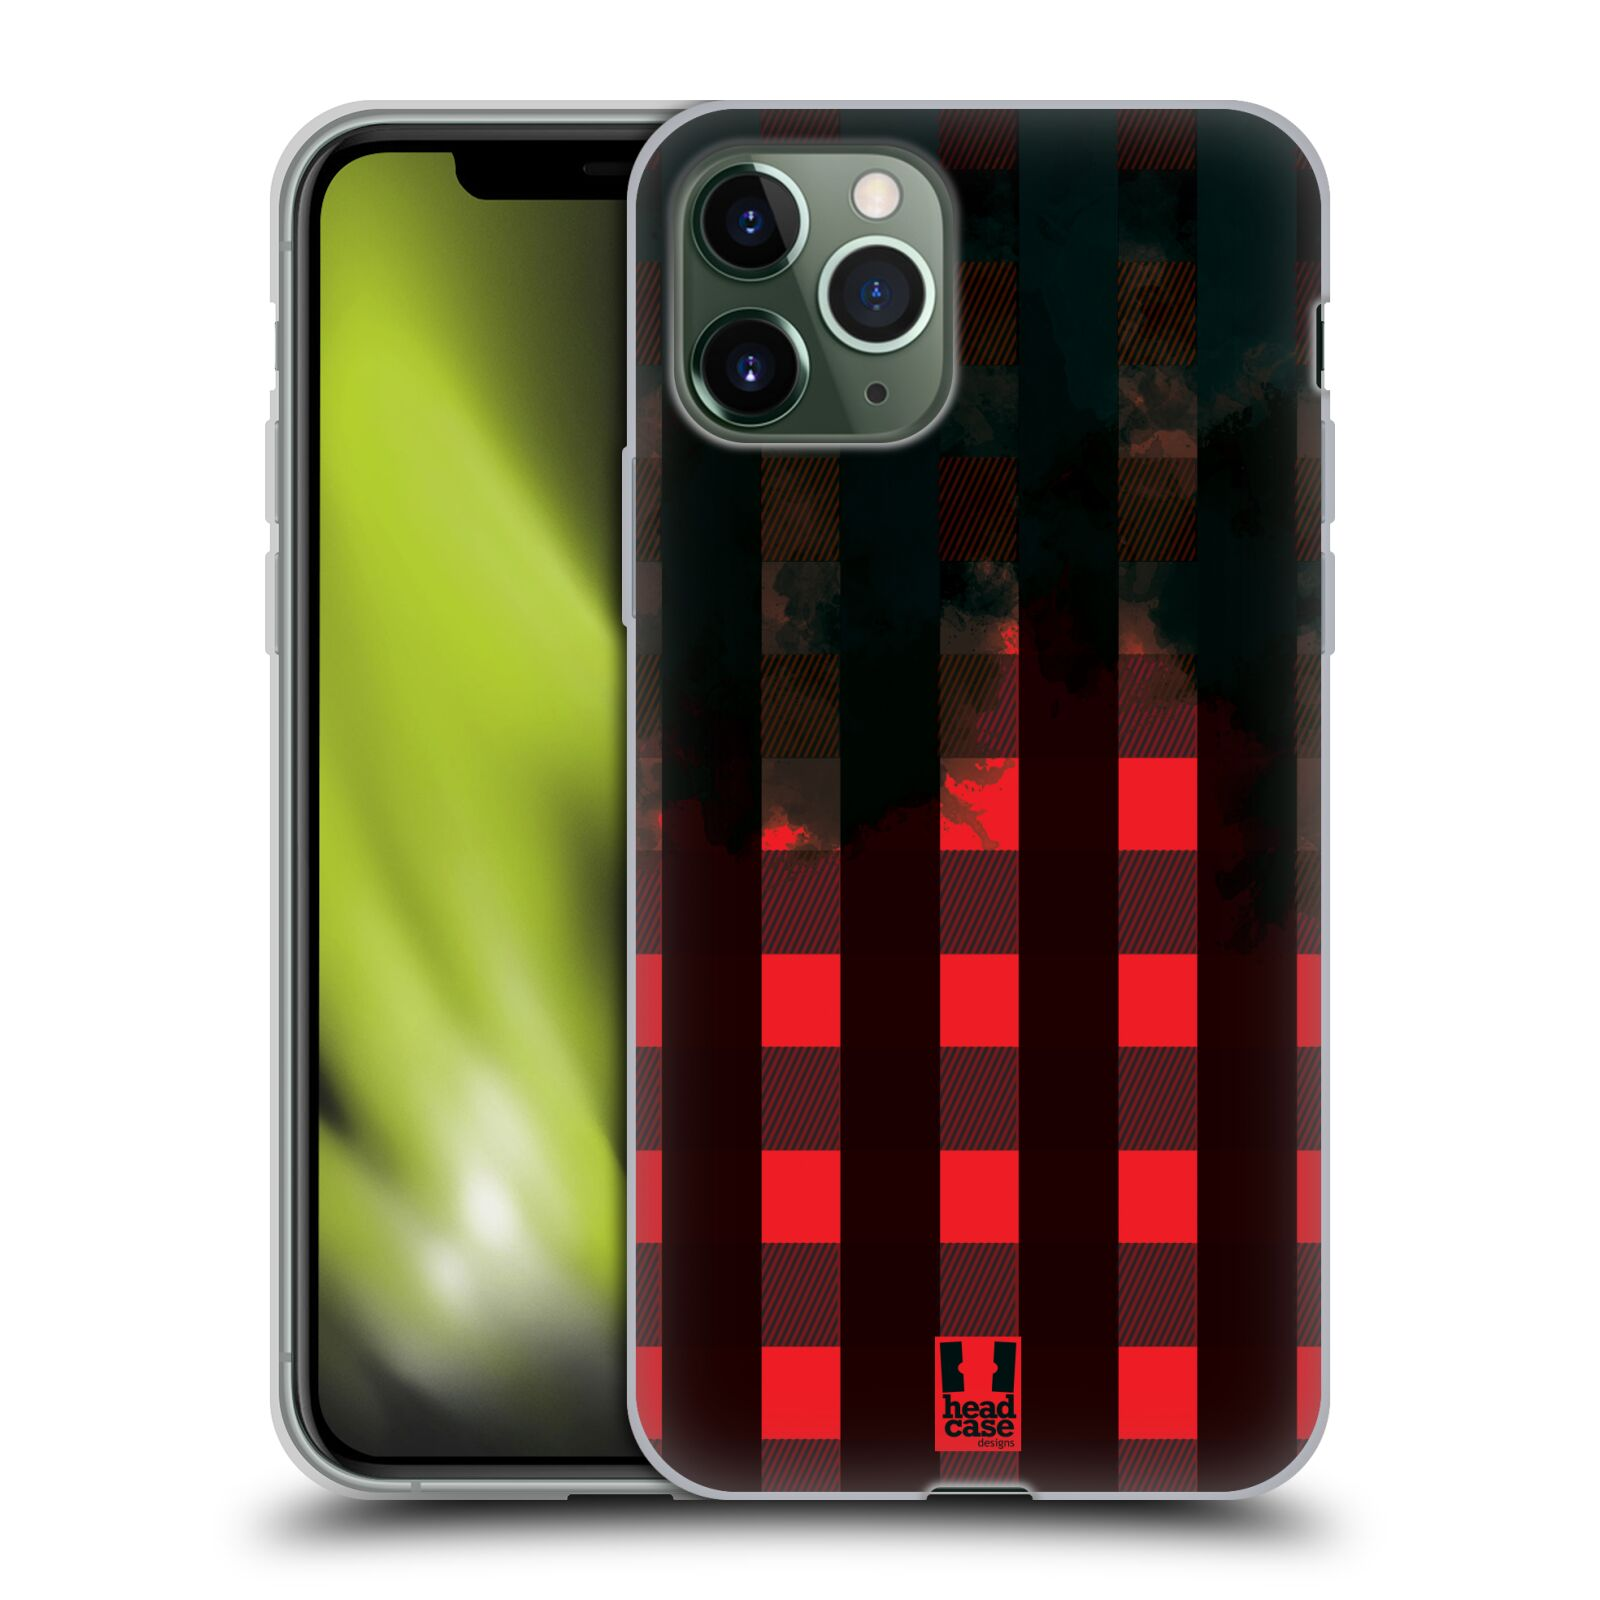 Silikonové pouzdro na mobil Apple iPhone 11 Pro - Head Case - FLANEL RED BLACK